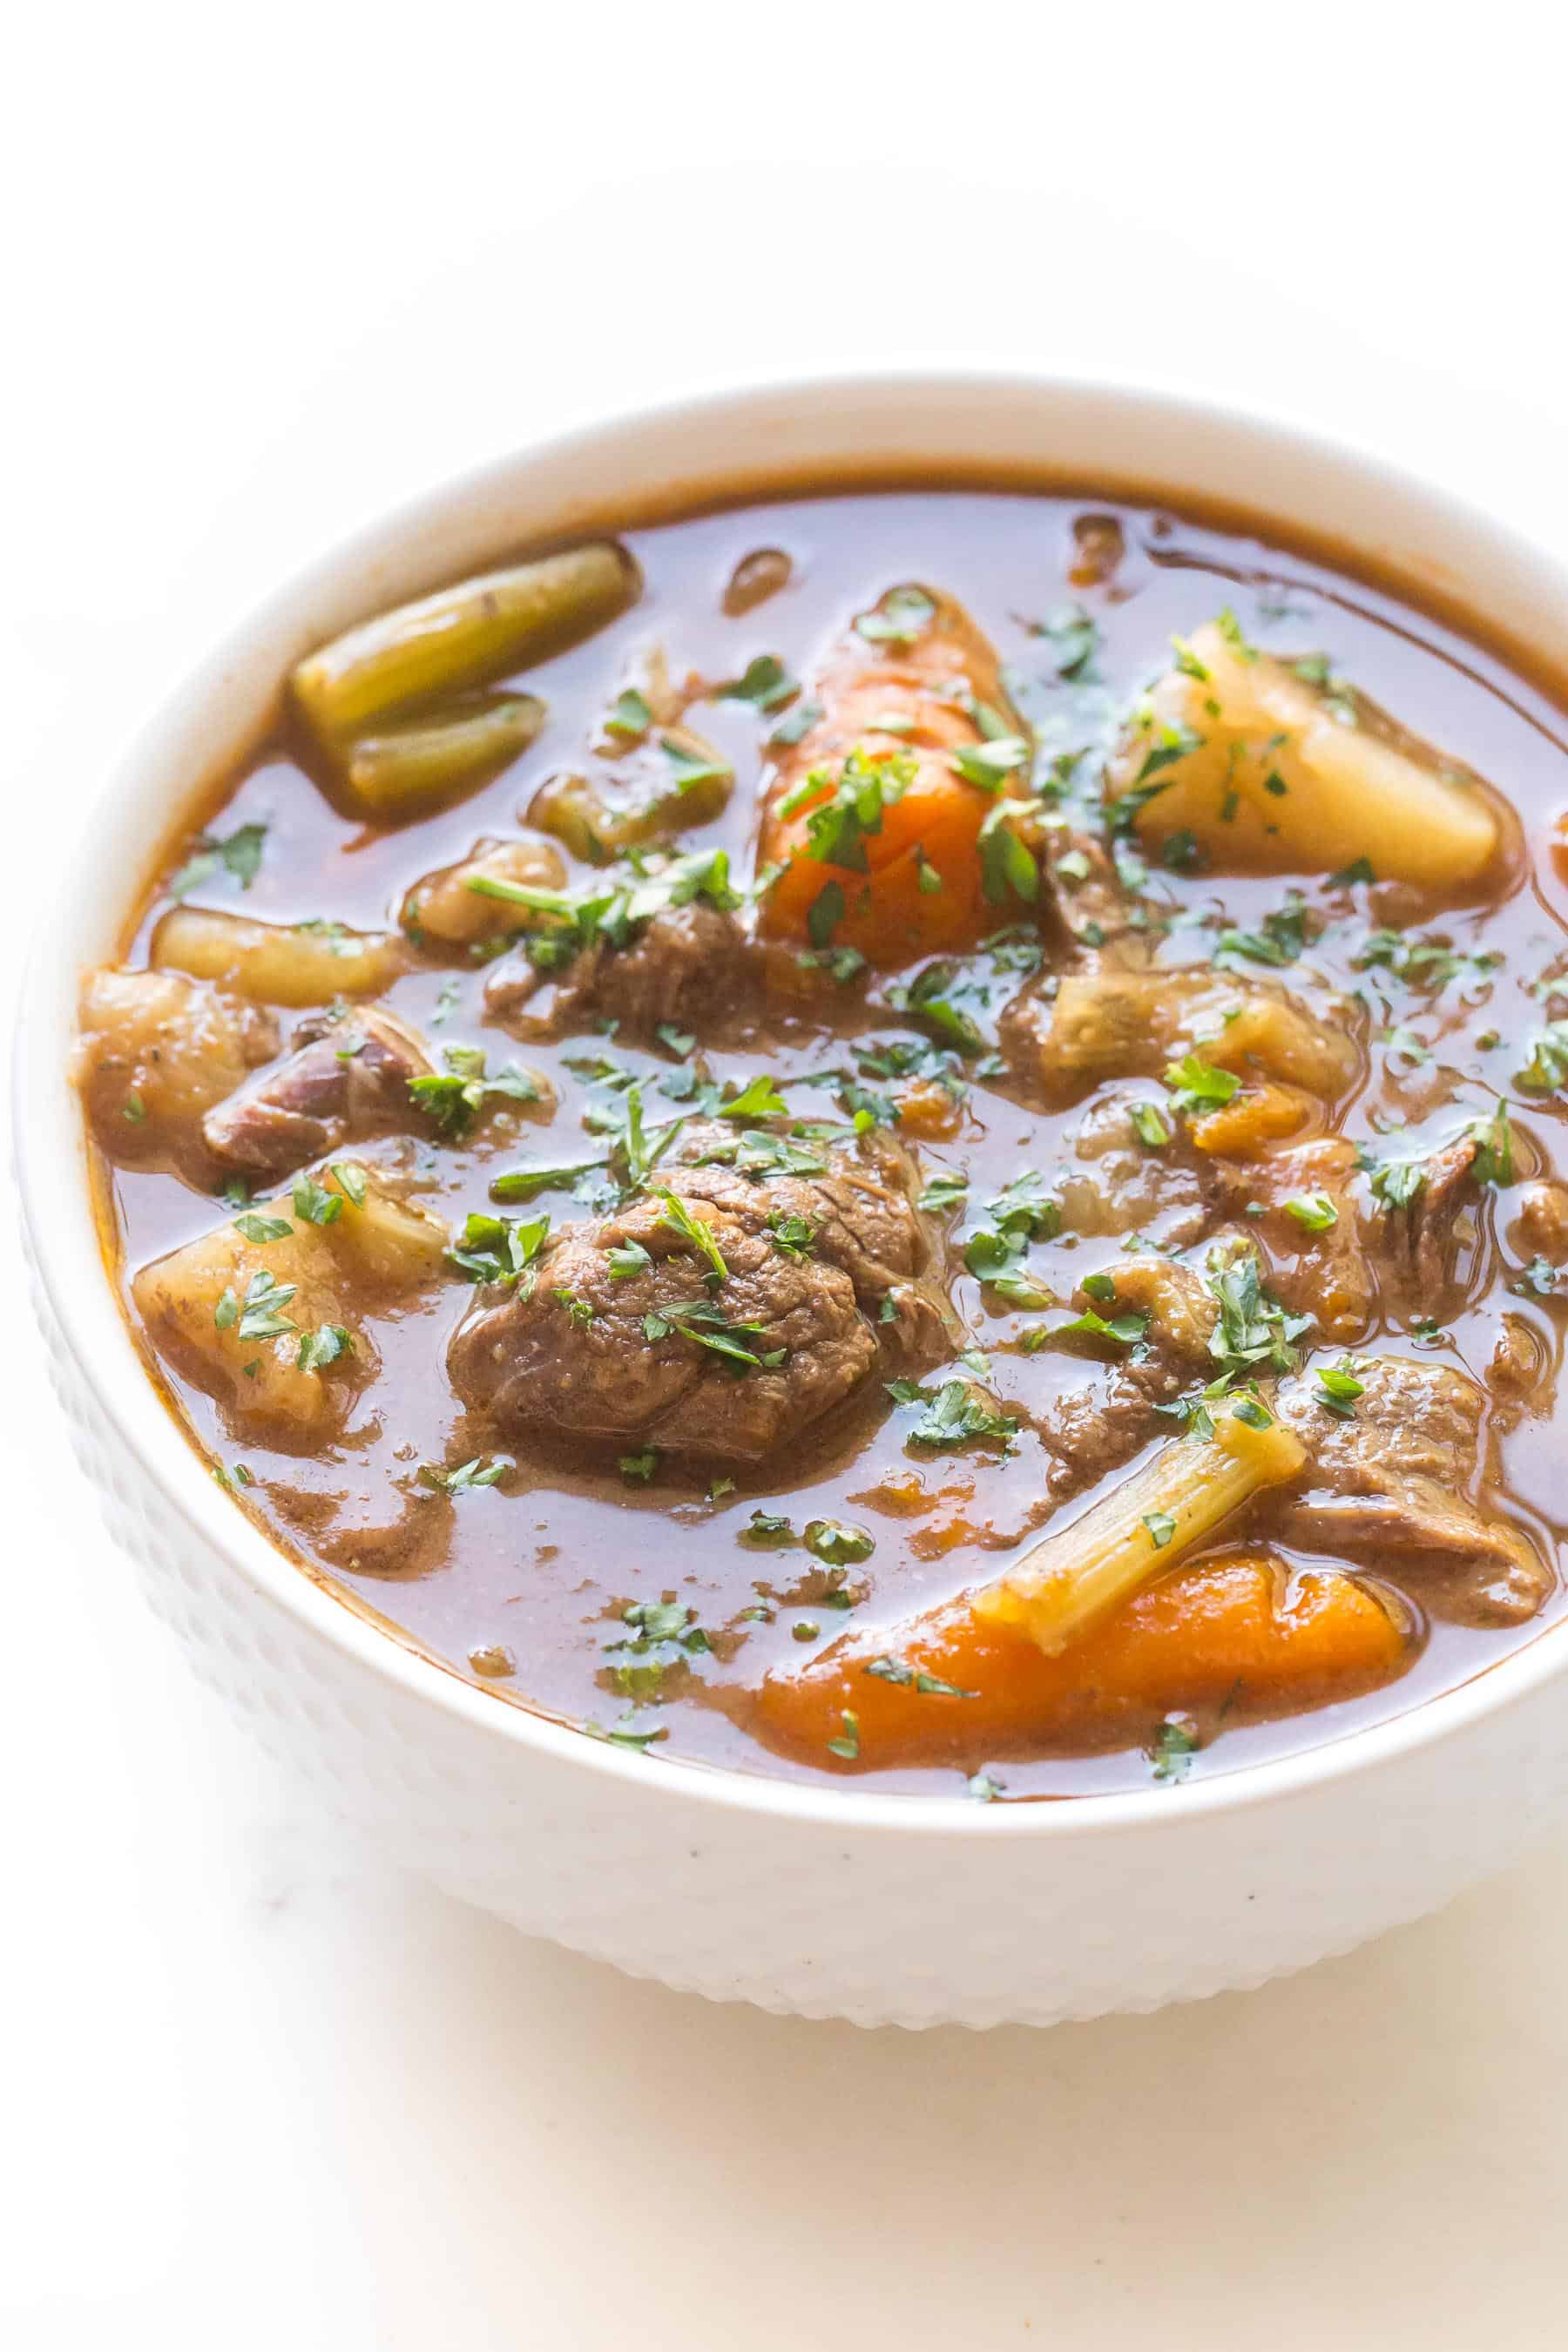 beef stew in a white bowl on a white background